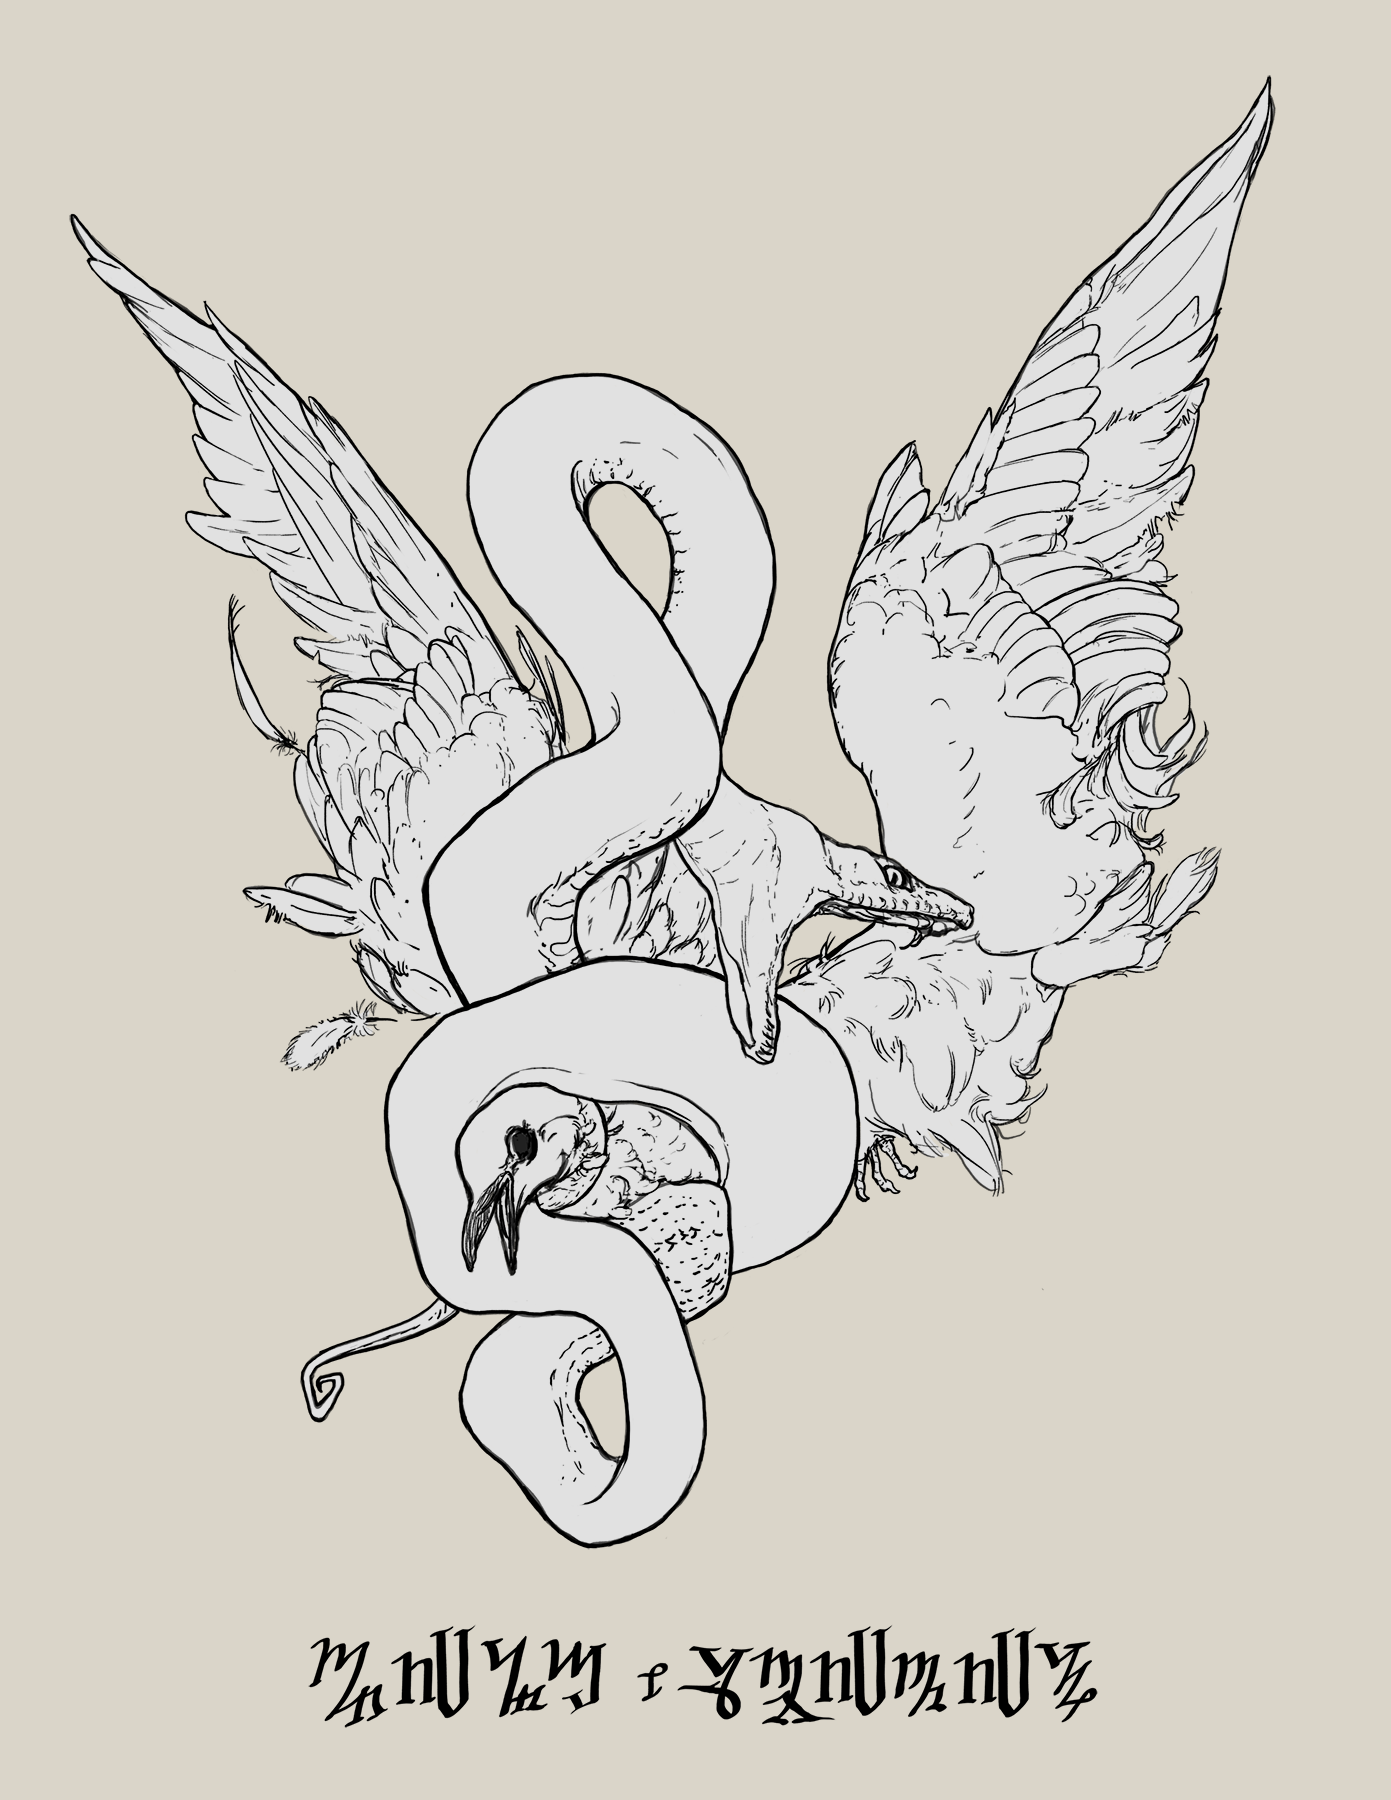 dove and serpent3.png